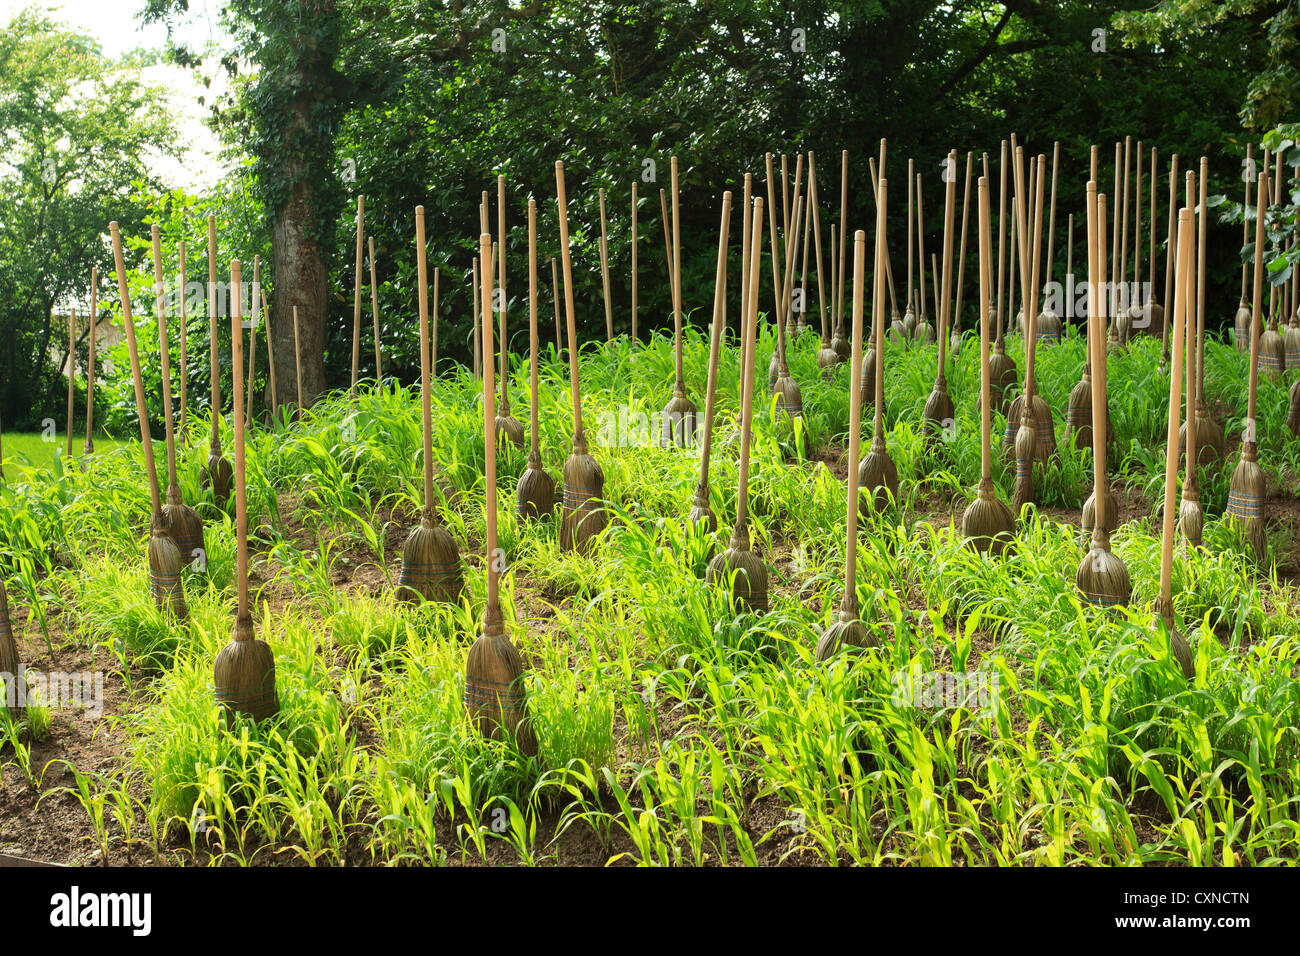 International Festival of Gardens of Chaumont-sur-loire 2012, grass and brooms by Michel Blazy. - Stock Image